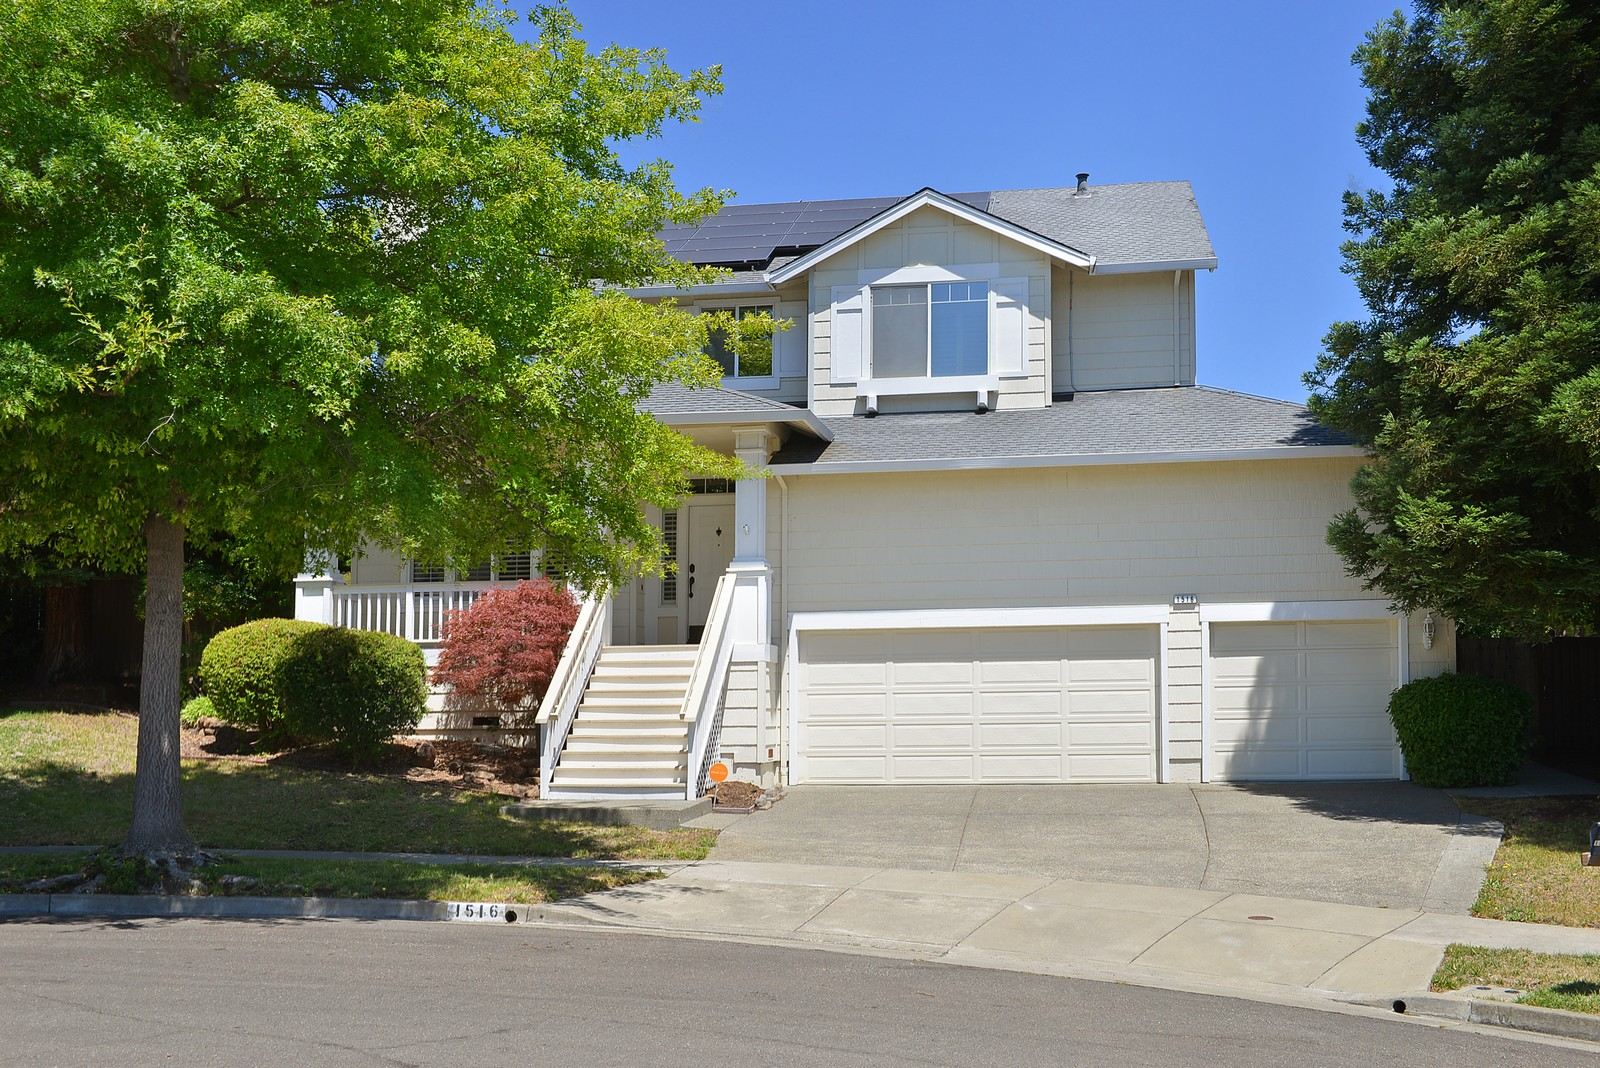 Single Family Home for Sale at Spacious Skyhawk Home 1516 Great Owl Place Santa Rosa, California, 95409 United States